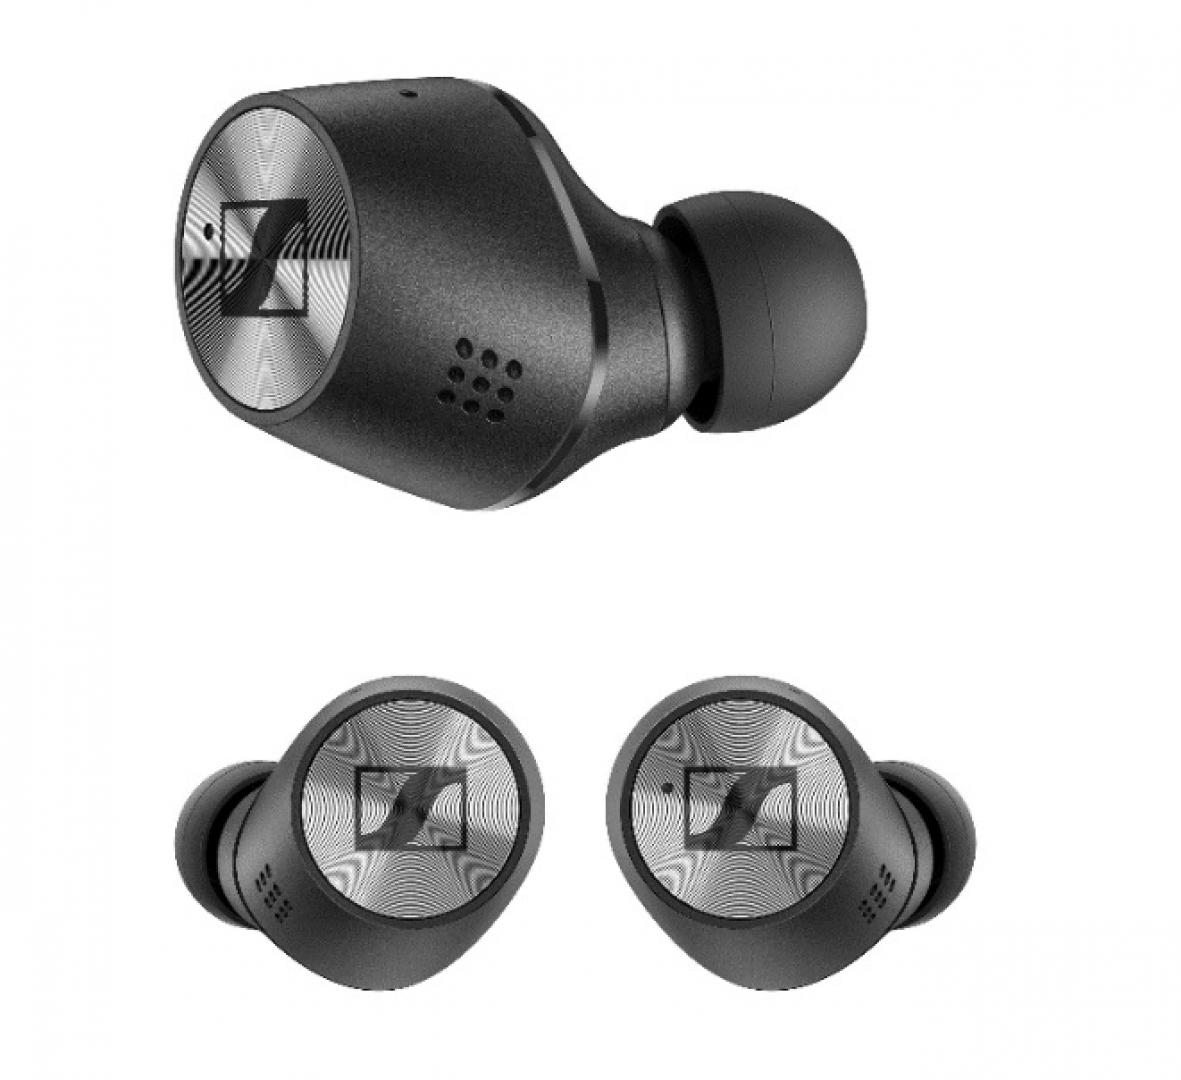 Sennheiser Momentum True Wireless 2